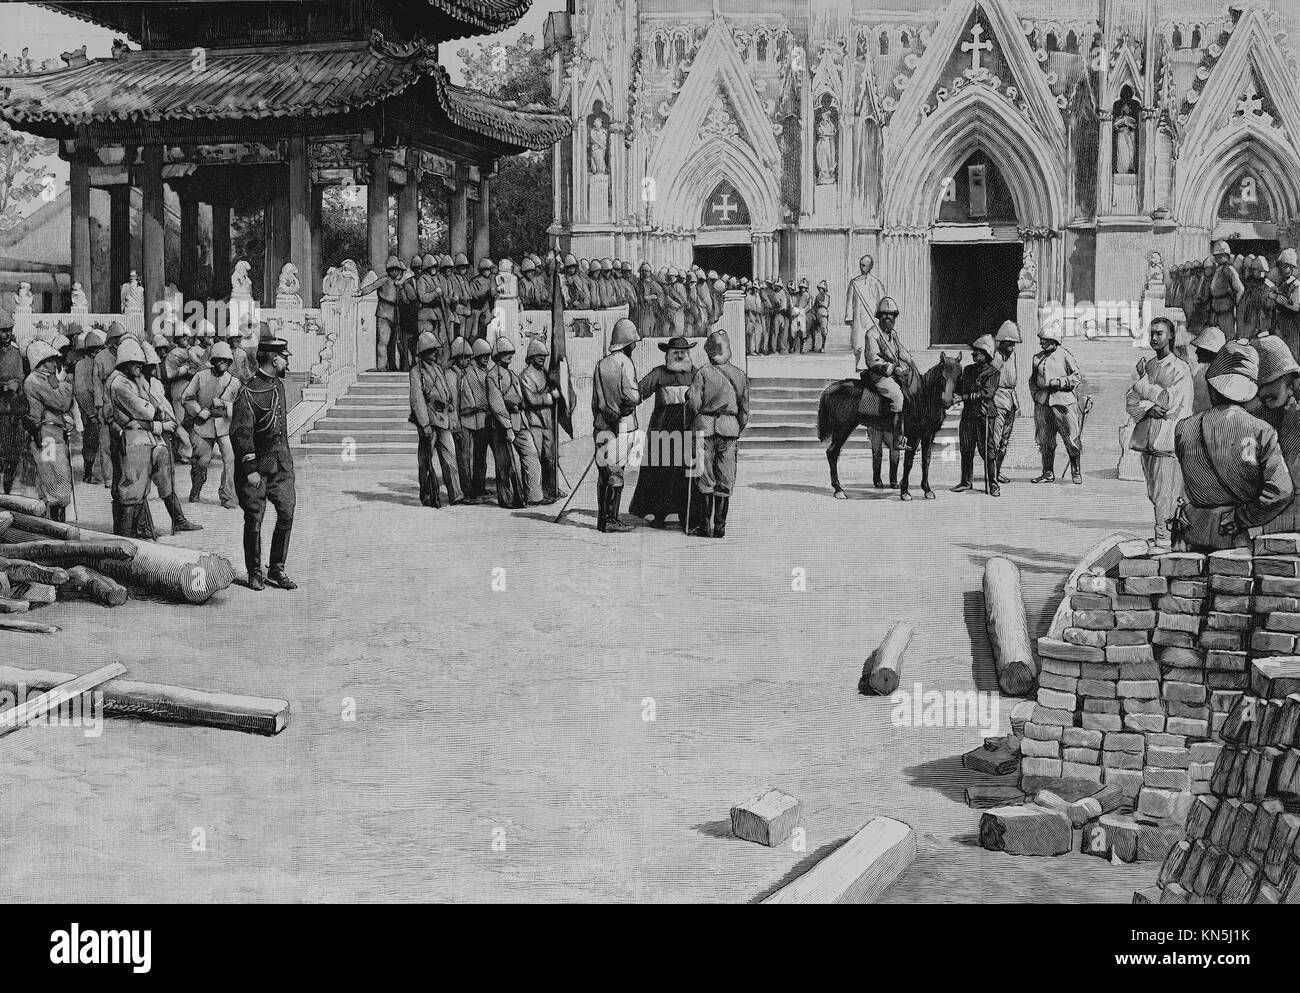 Beijing 1900, Te Deum in the Church of Saviour or Pe-Tang Cathedral, Picture from the French weekly newspaper l'Illustration, - Stock Image